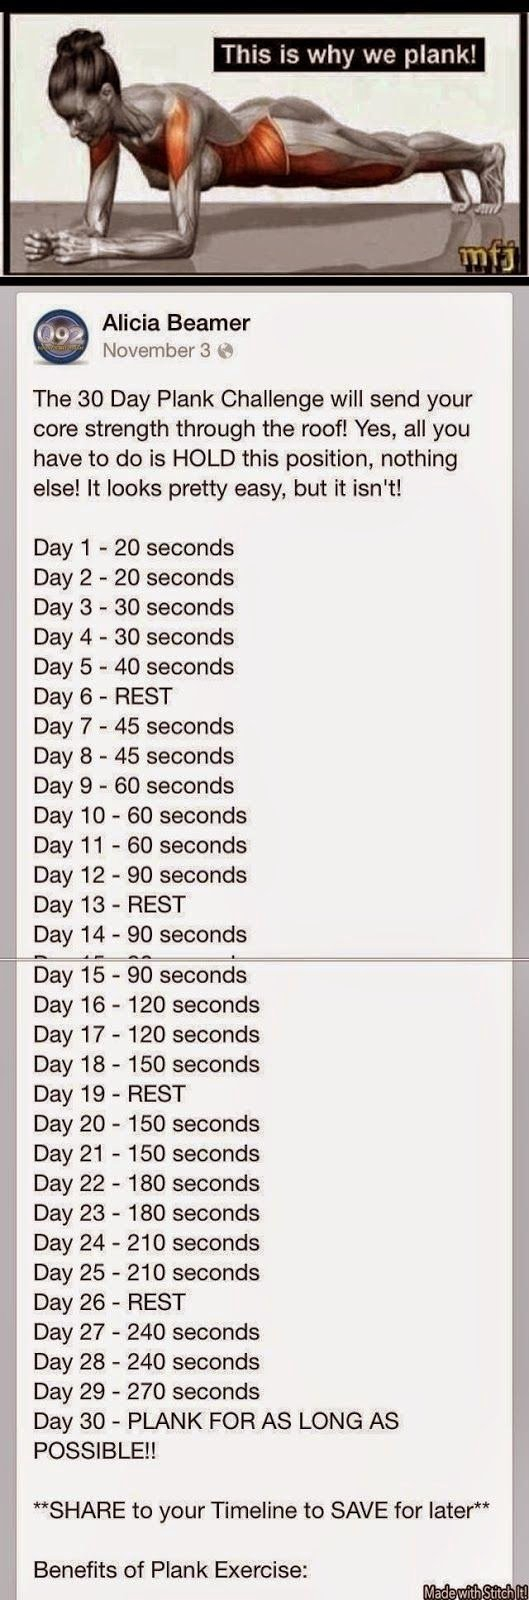 Simply Healthy: Thoughts On The 30 Day Plank Challenge 30 Day Plank Challenge Free